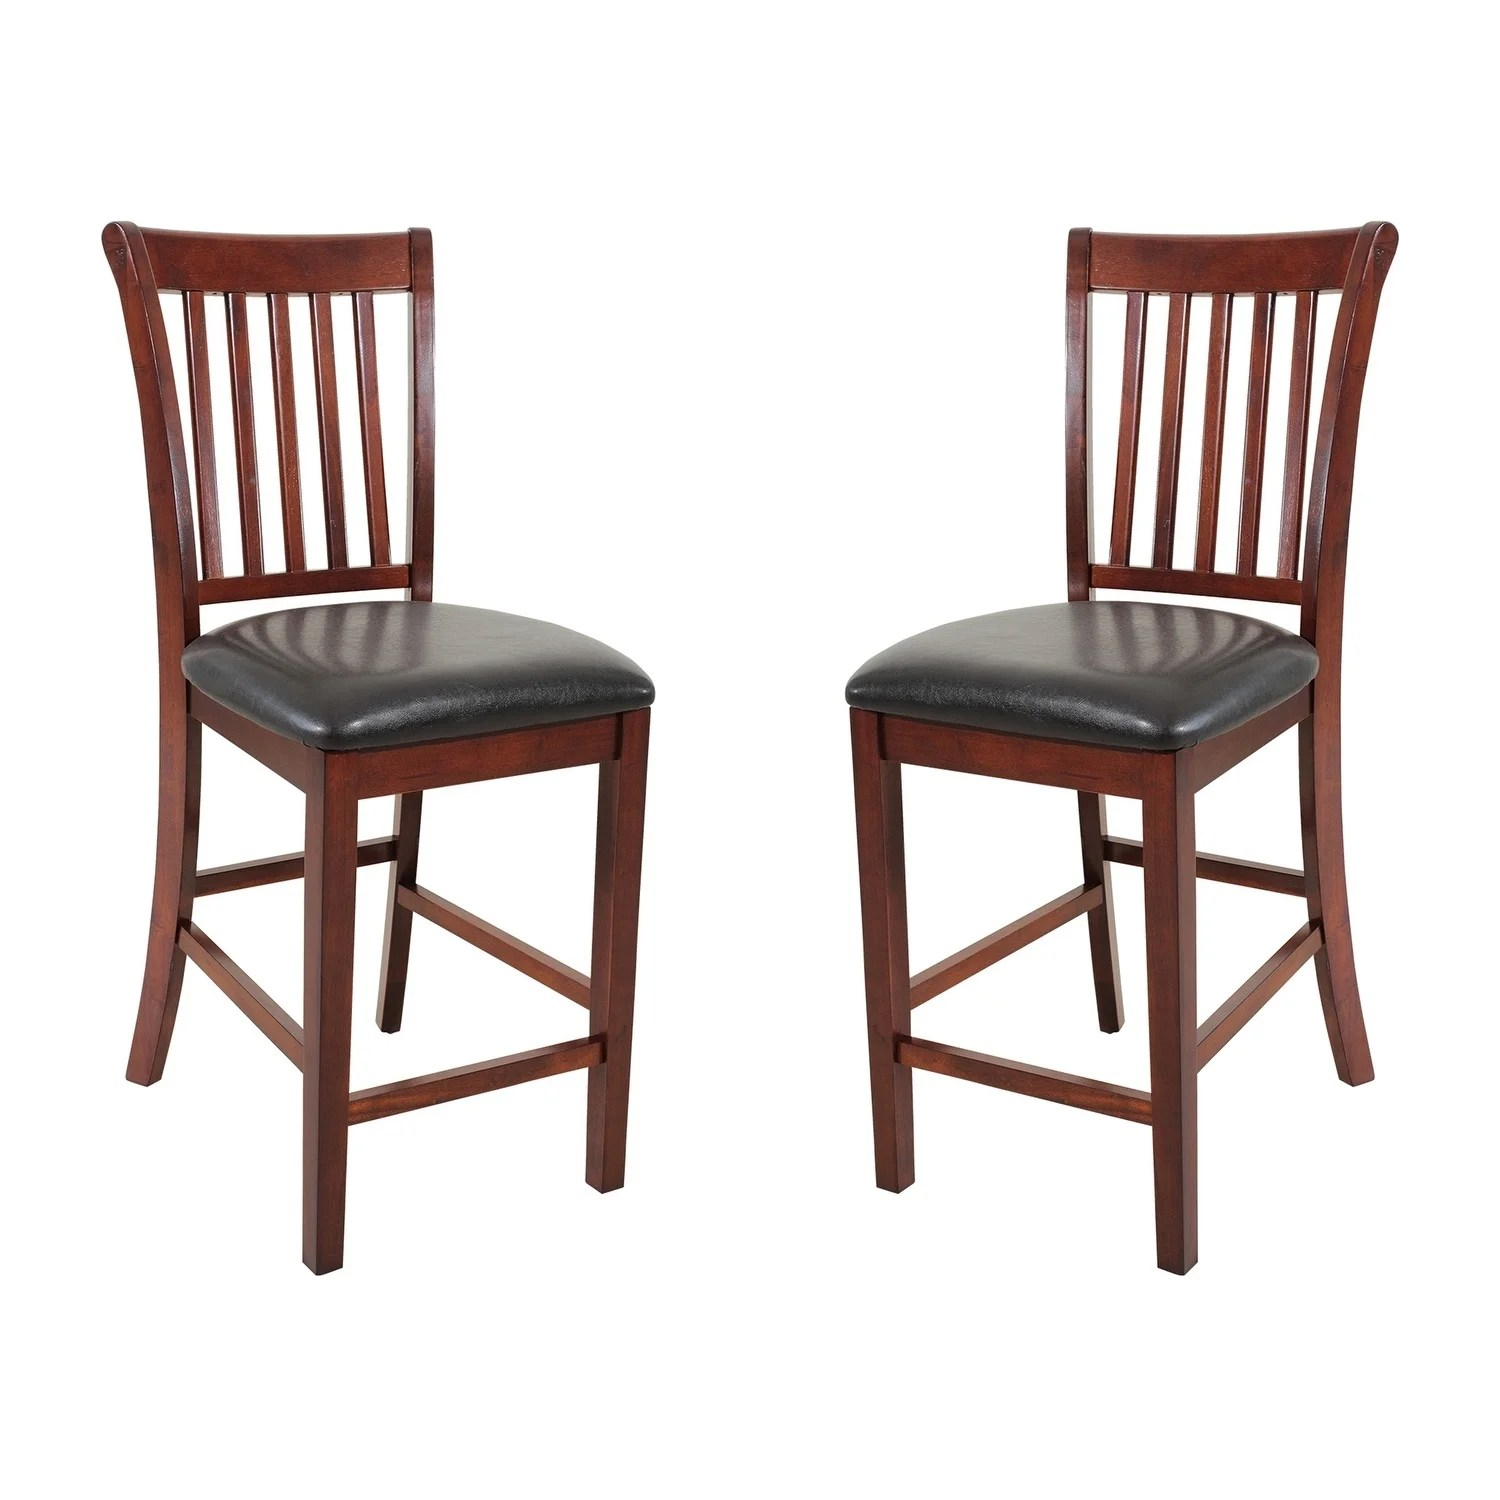 Kitchen Chairs Wood Solid Wood Counter Height Sturdy Dining Chair Modern Kitchen Chair Chestnut Set Of 2